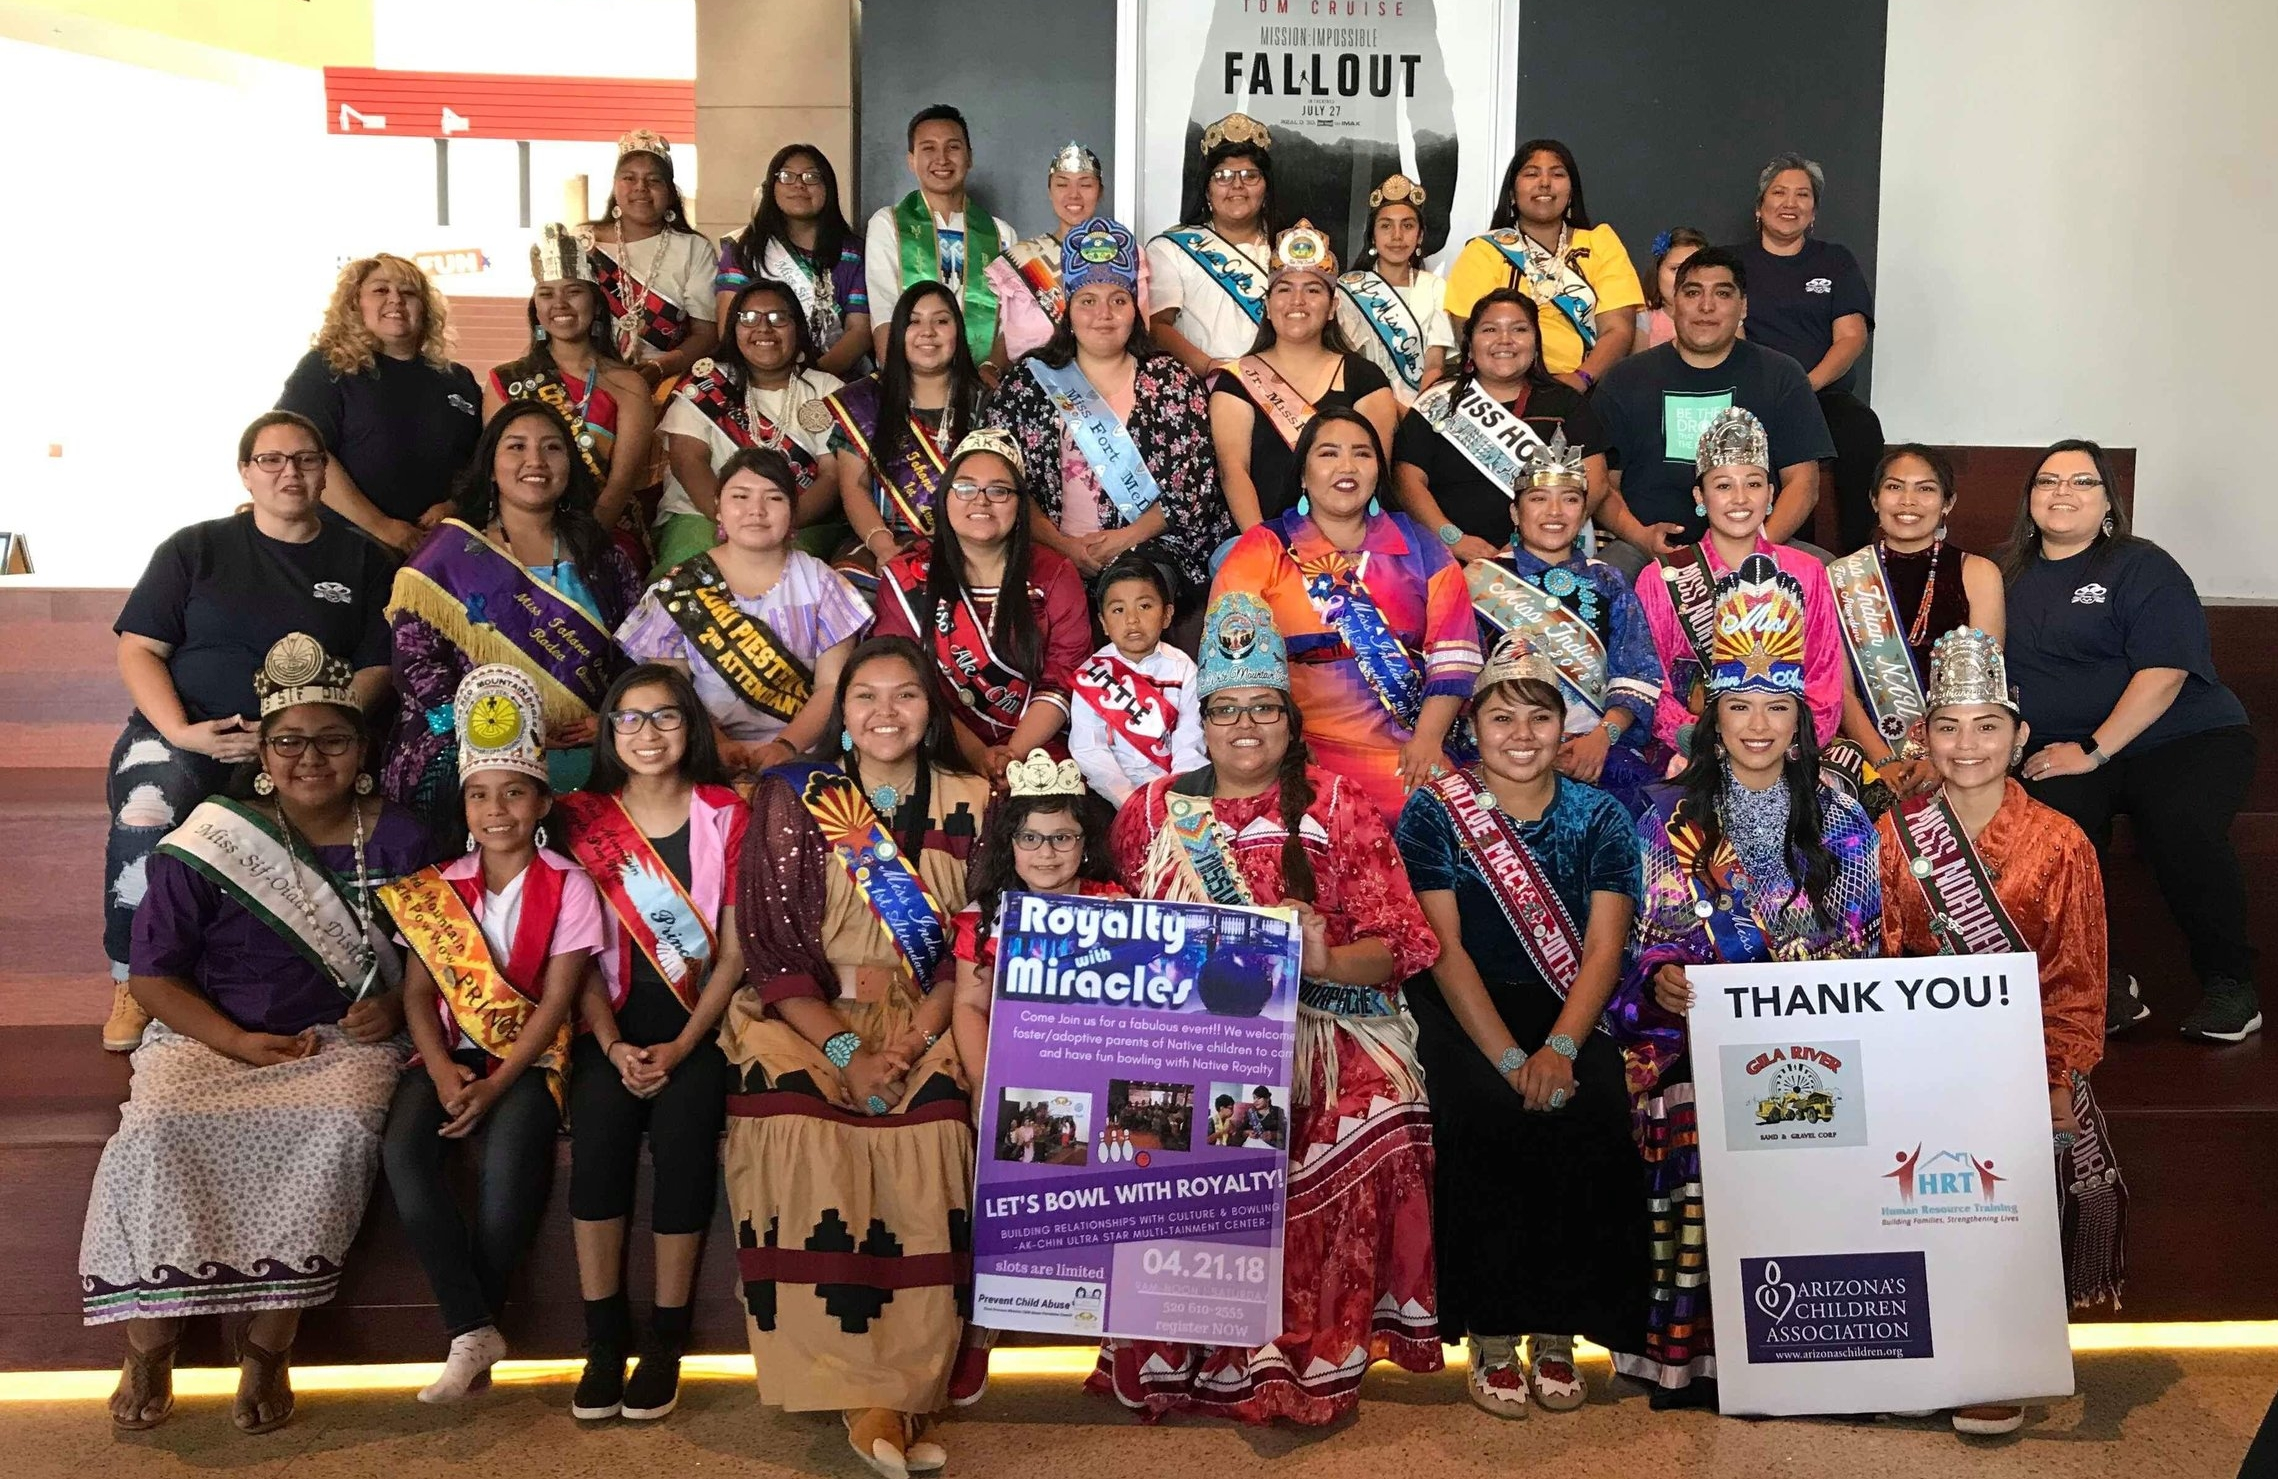 Group photo of all Royalty that attended 4/21/18 -